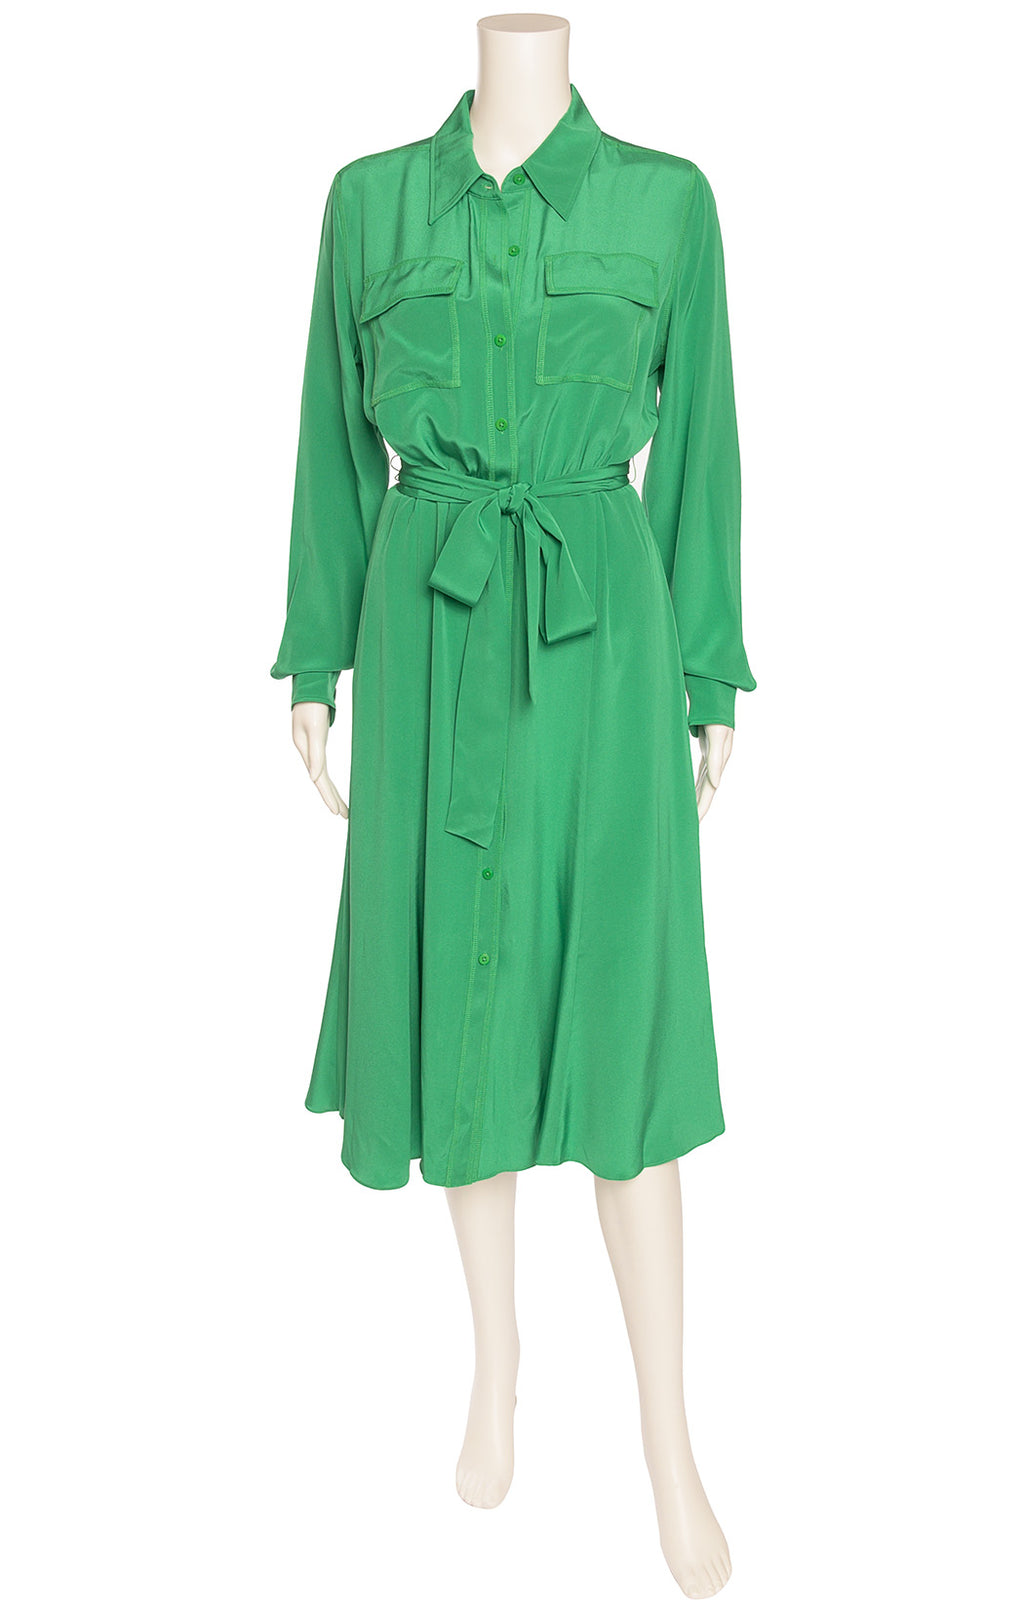 Front view of DIANE VON FURSTENBERG with tags Dress Size: Medium